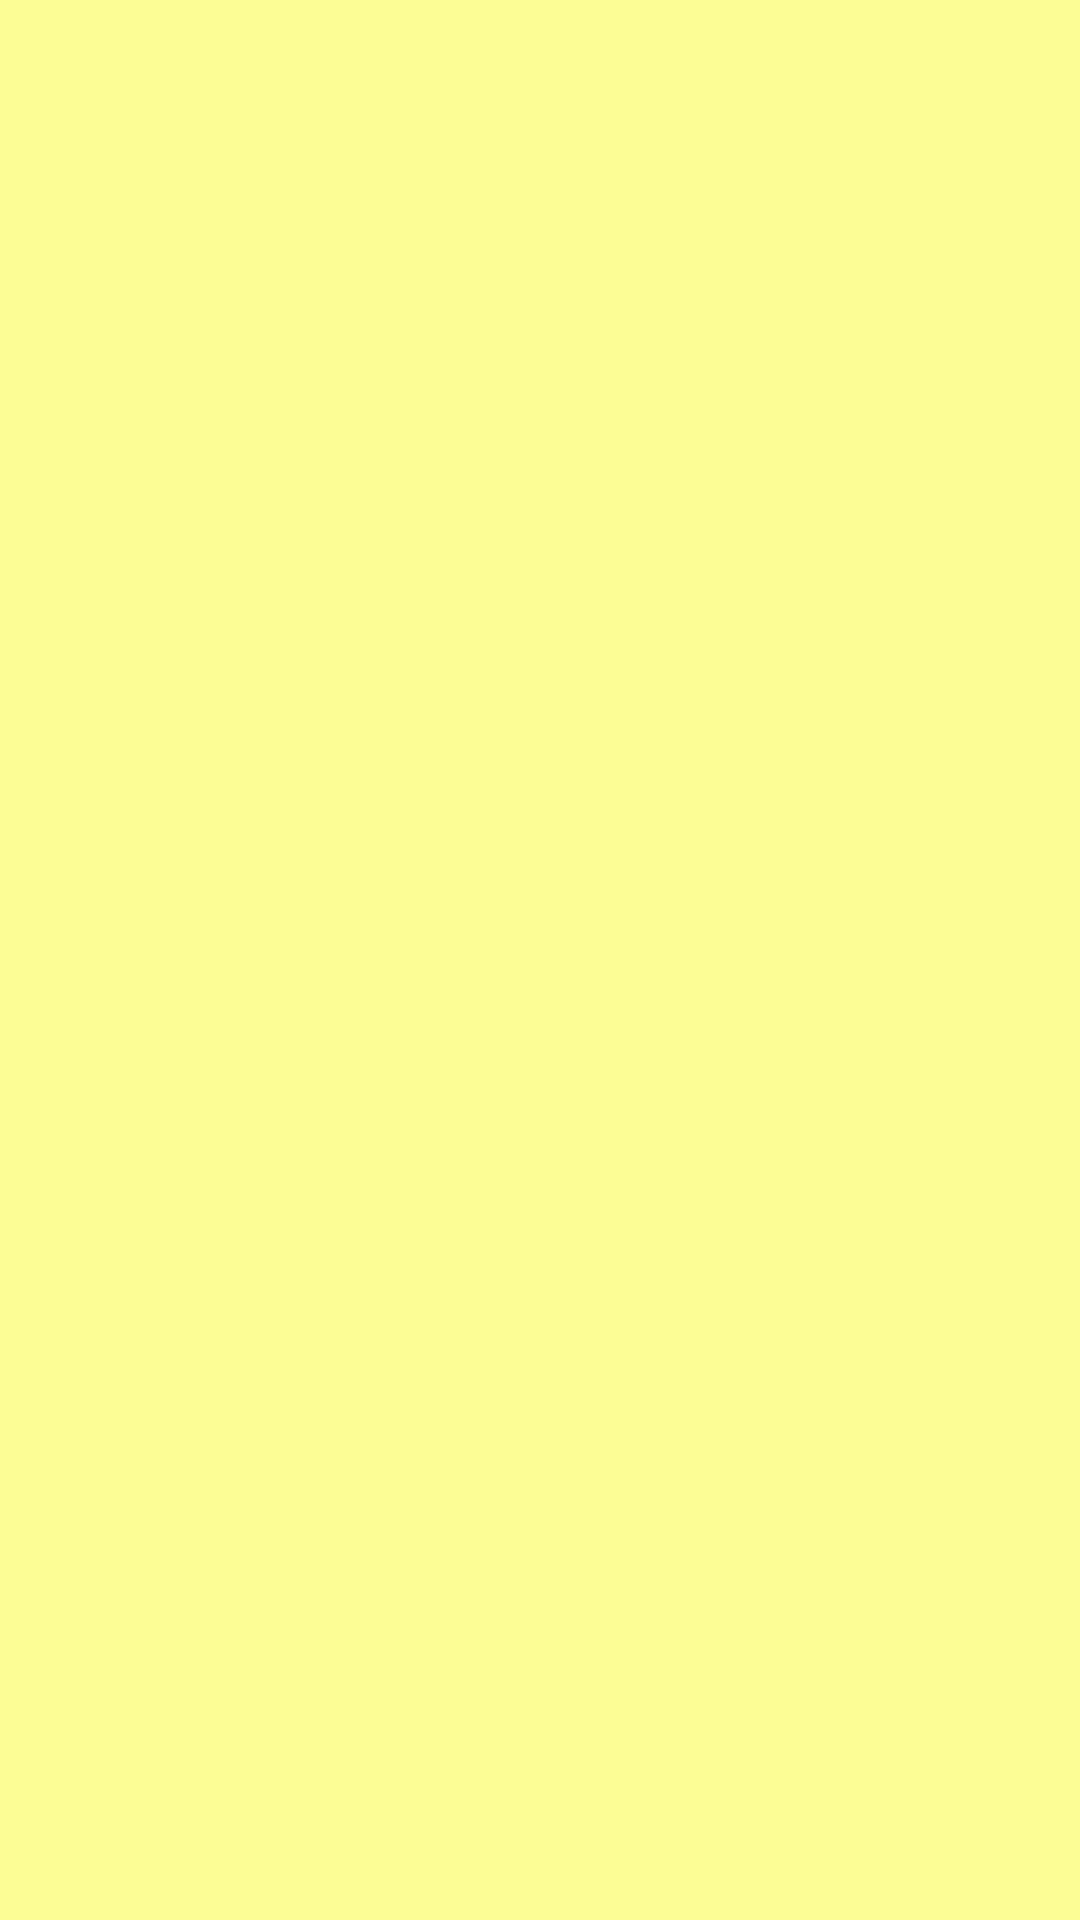 1080x1920 Pastel Yellow Solid Color Background